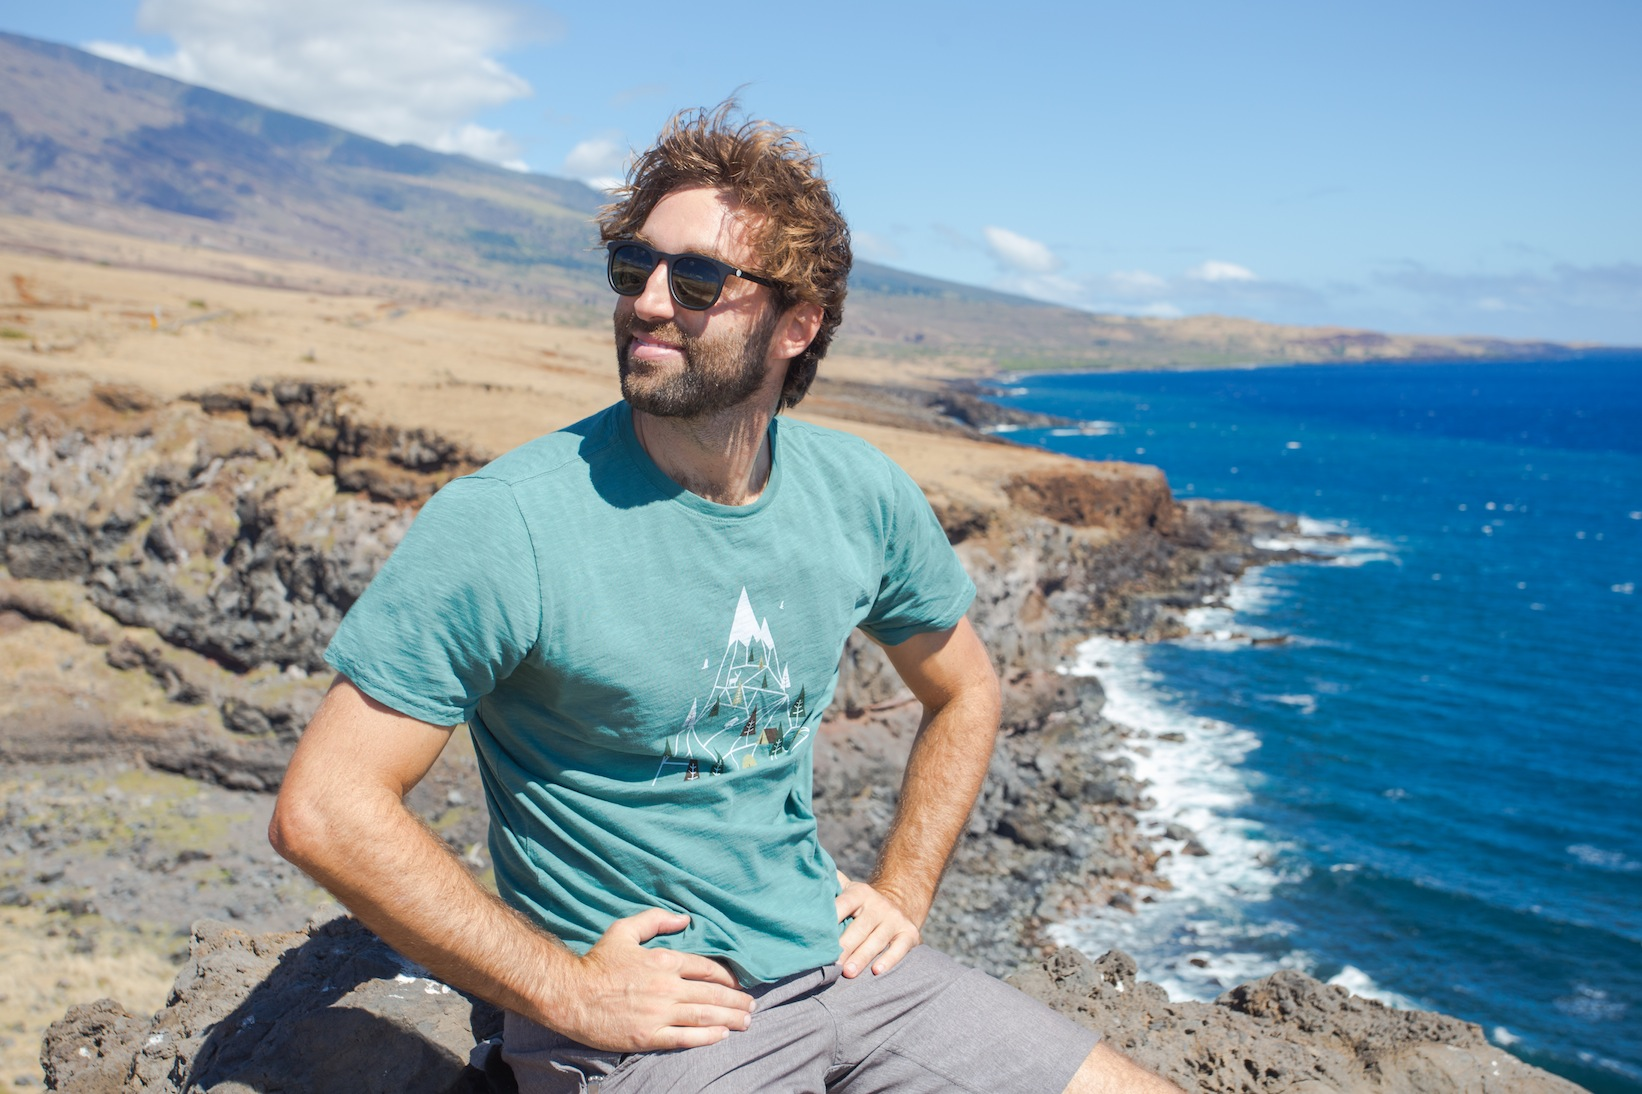 matt-portrait-sunski-roadtrip-maui.jpg.jpg